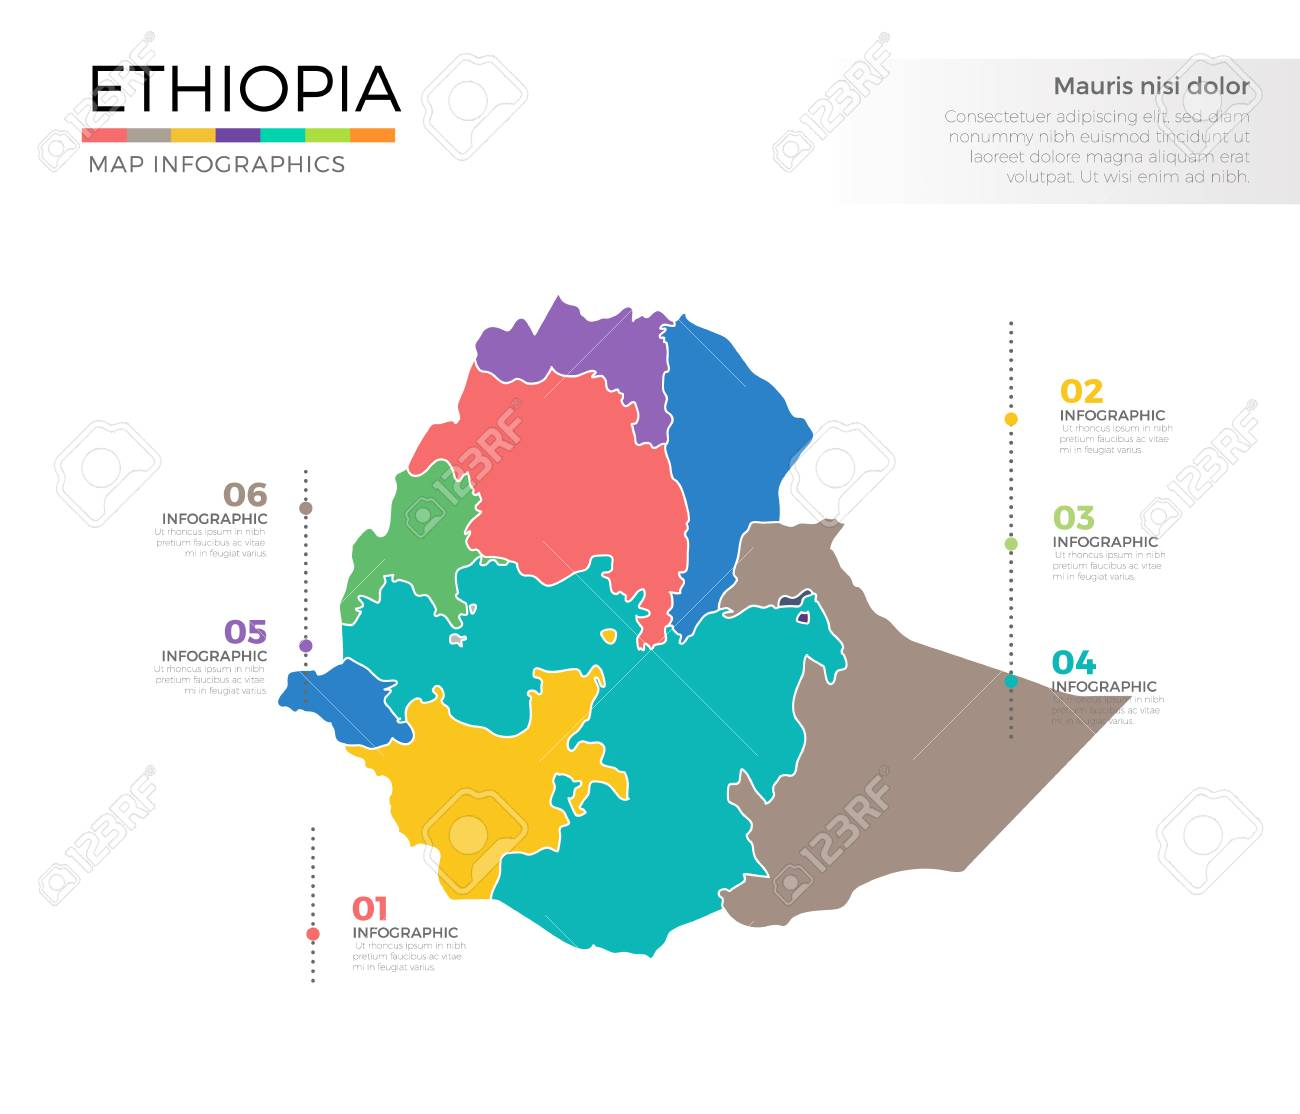 Ethiopia country map infographic colored vector template with